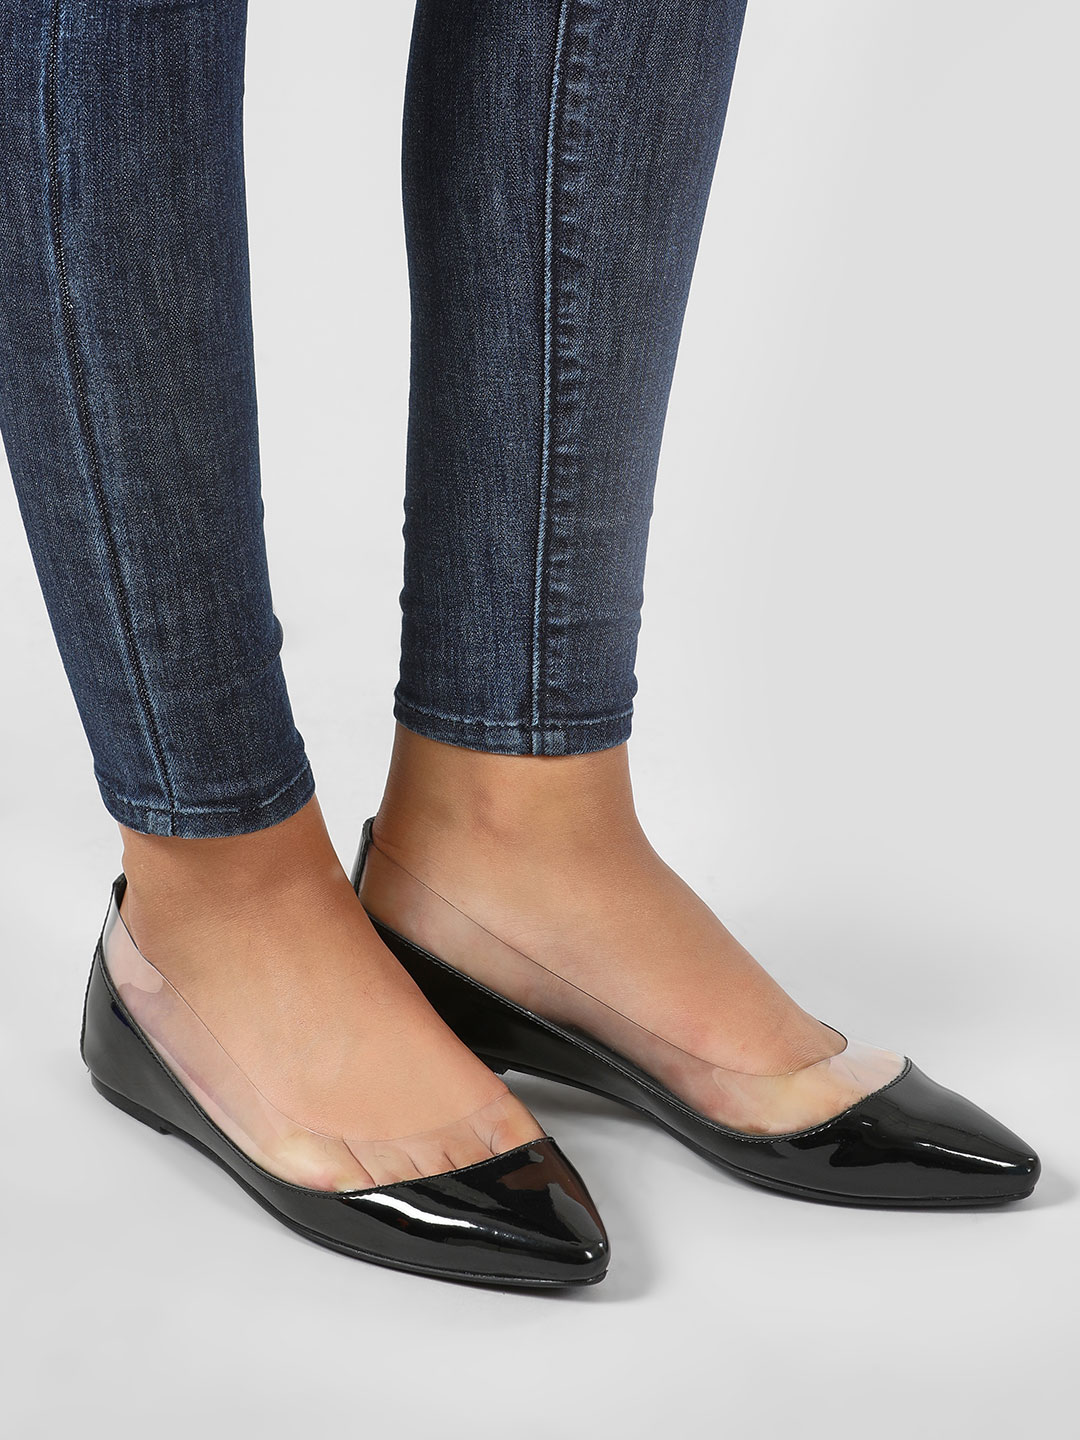 KOOVS Black Vinyl Ballet Flat Shoes 1